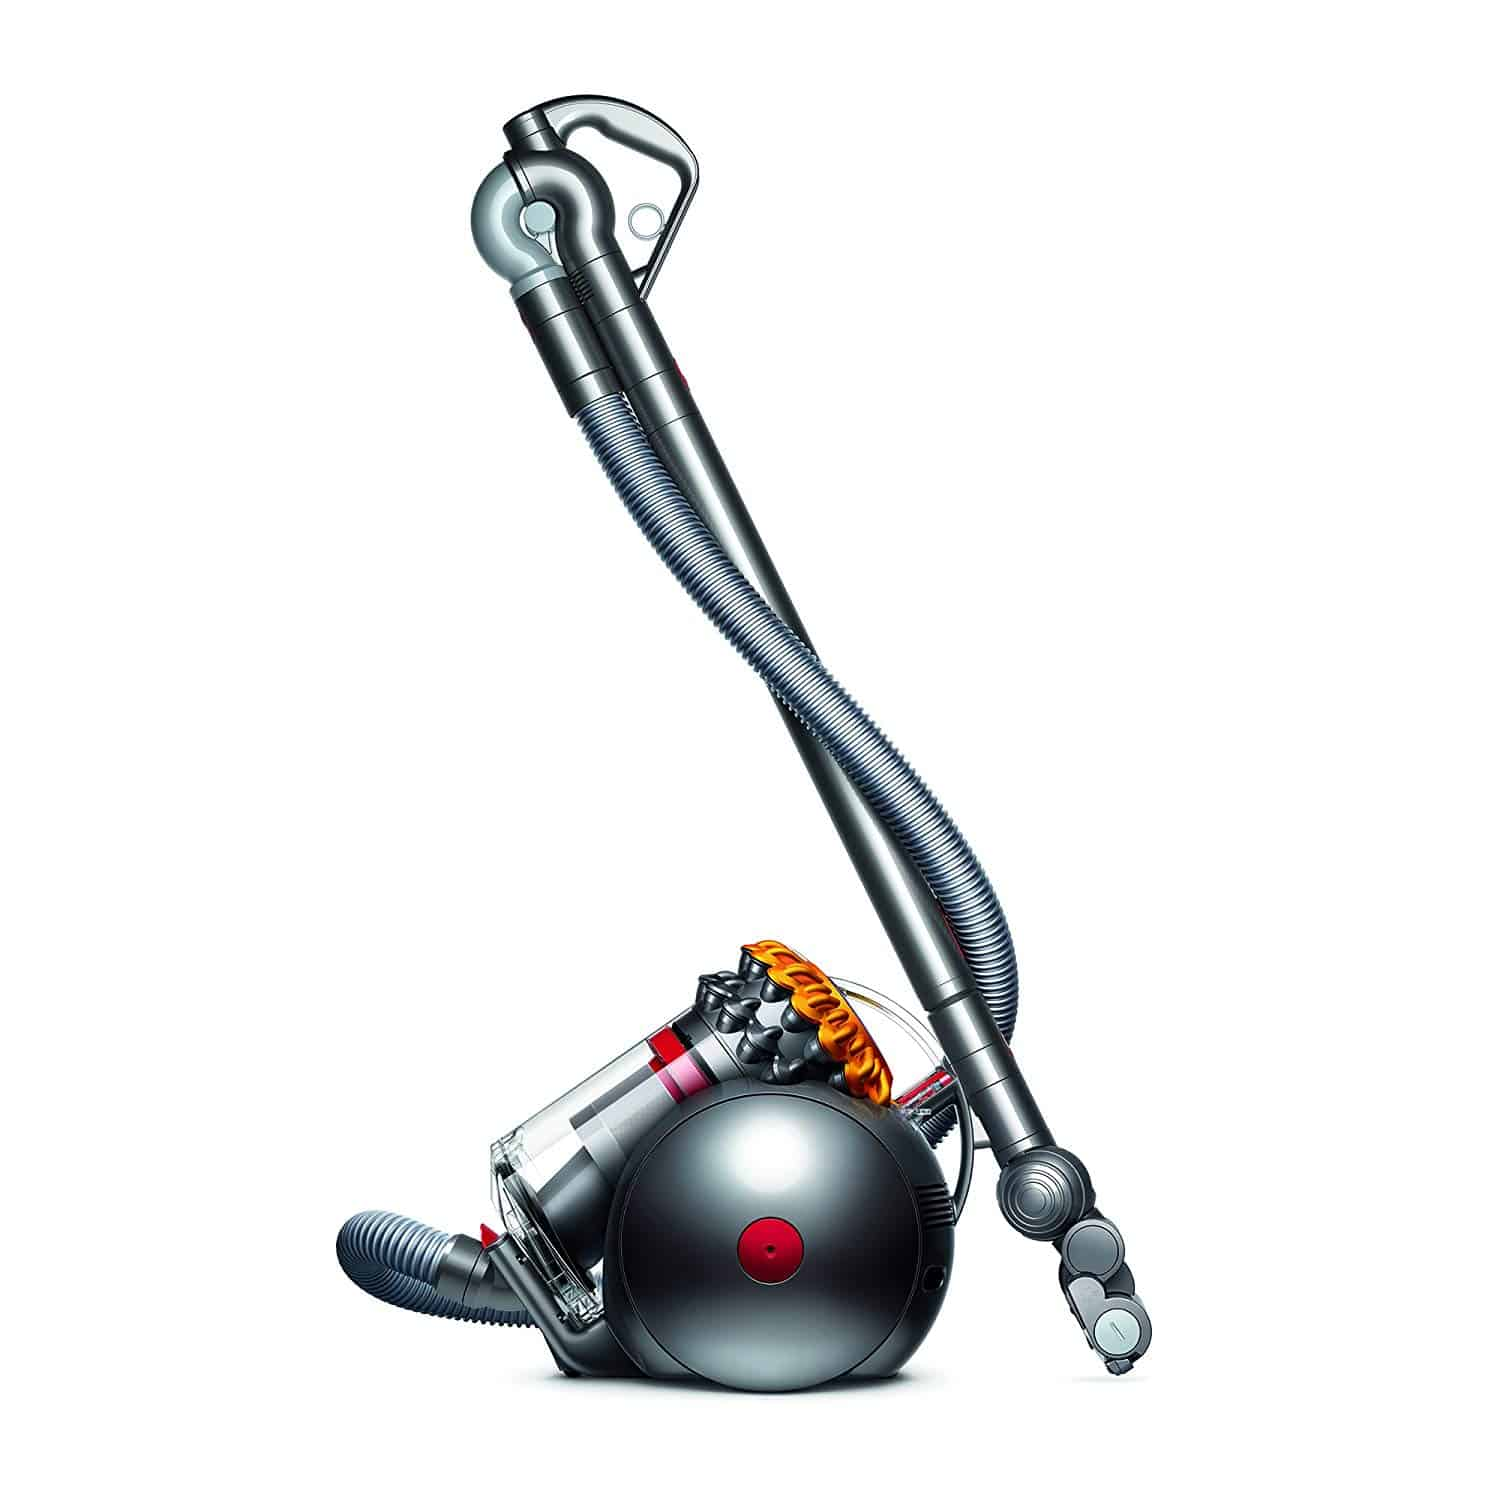 Dyson Big Ball, one of the best canister vacuums